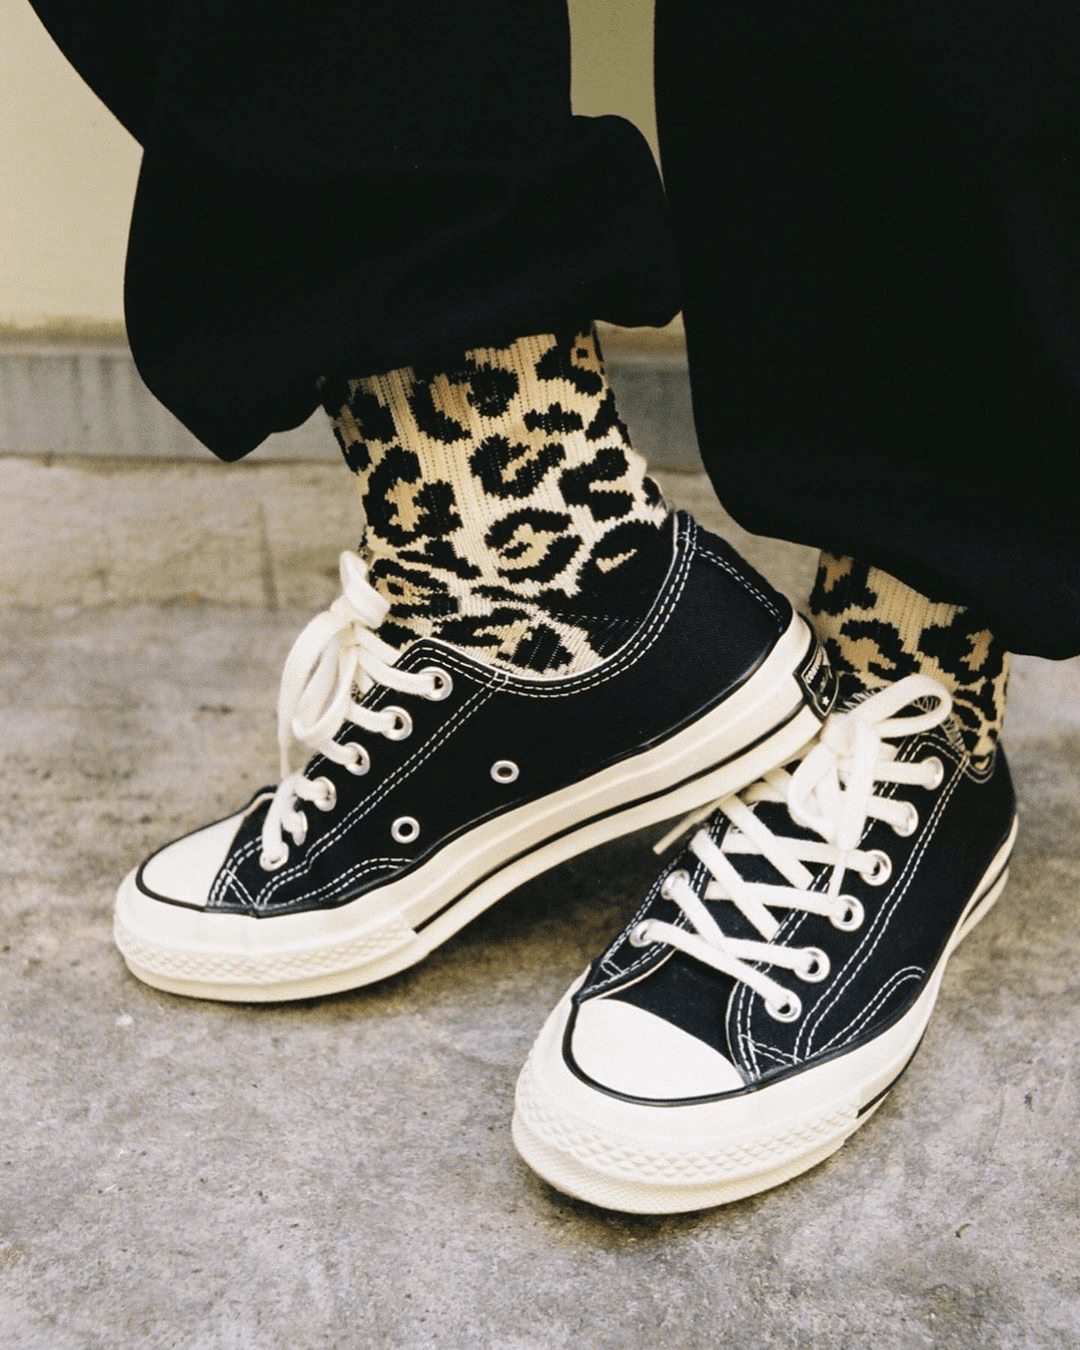 Converse up to 55% on Lazada